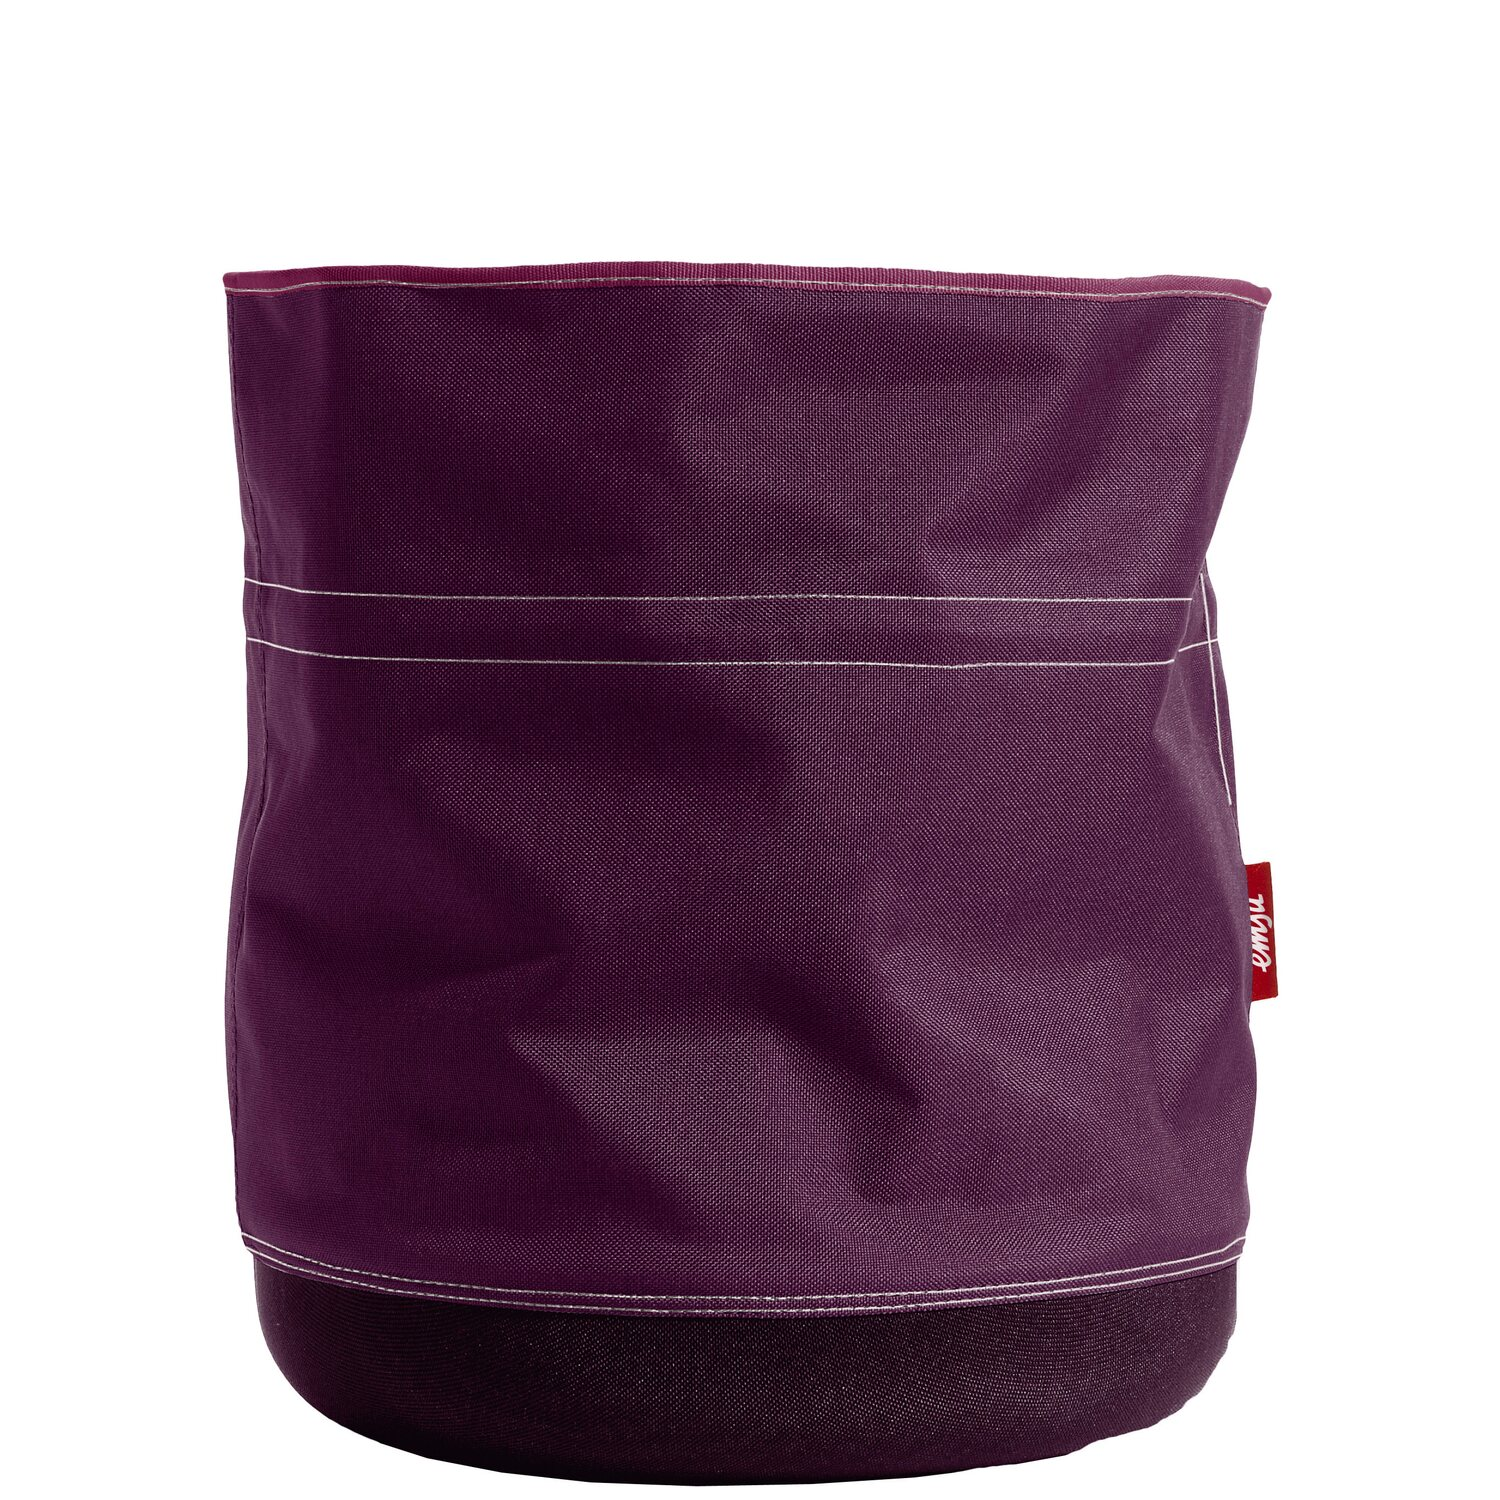 emsa bertopf soft bag 15 cm aubergine kaufen bei obi. Black Bedroom Furniture Sets. Home Design Ideas